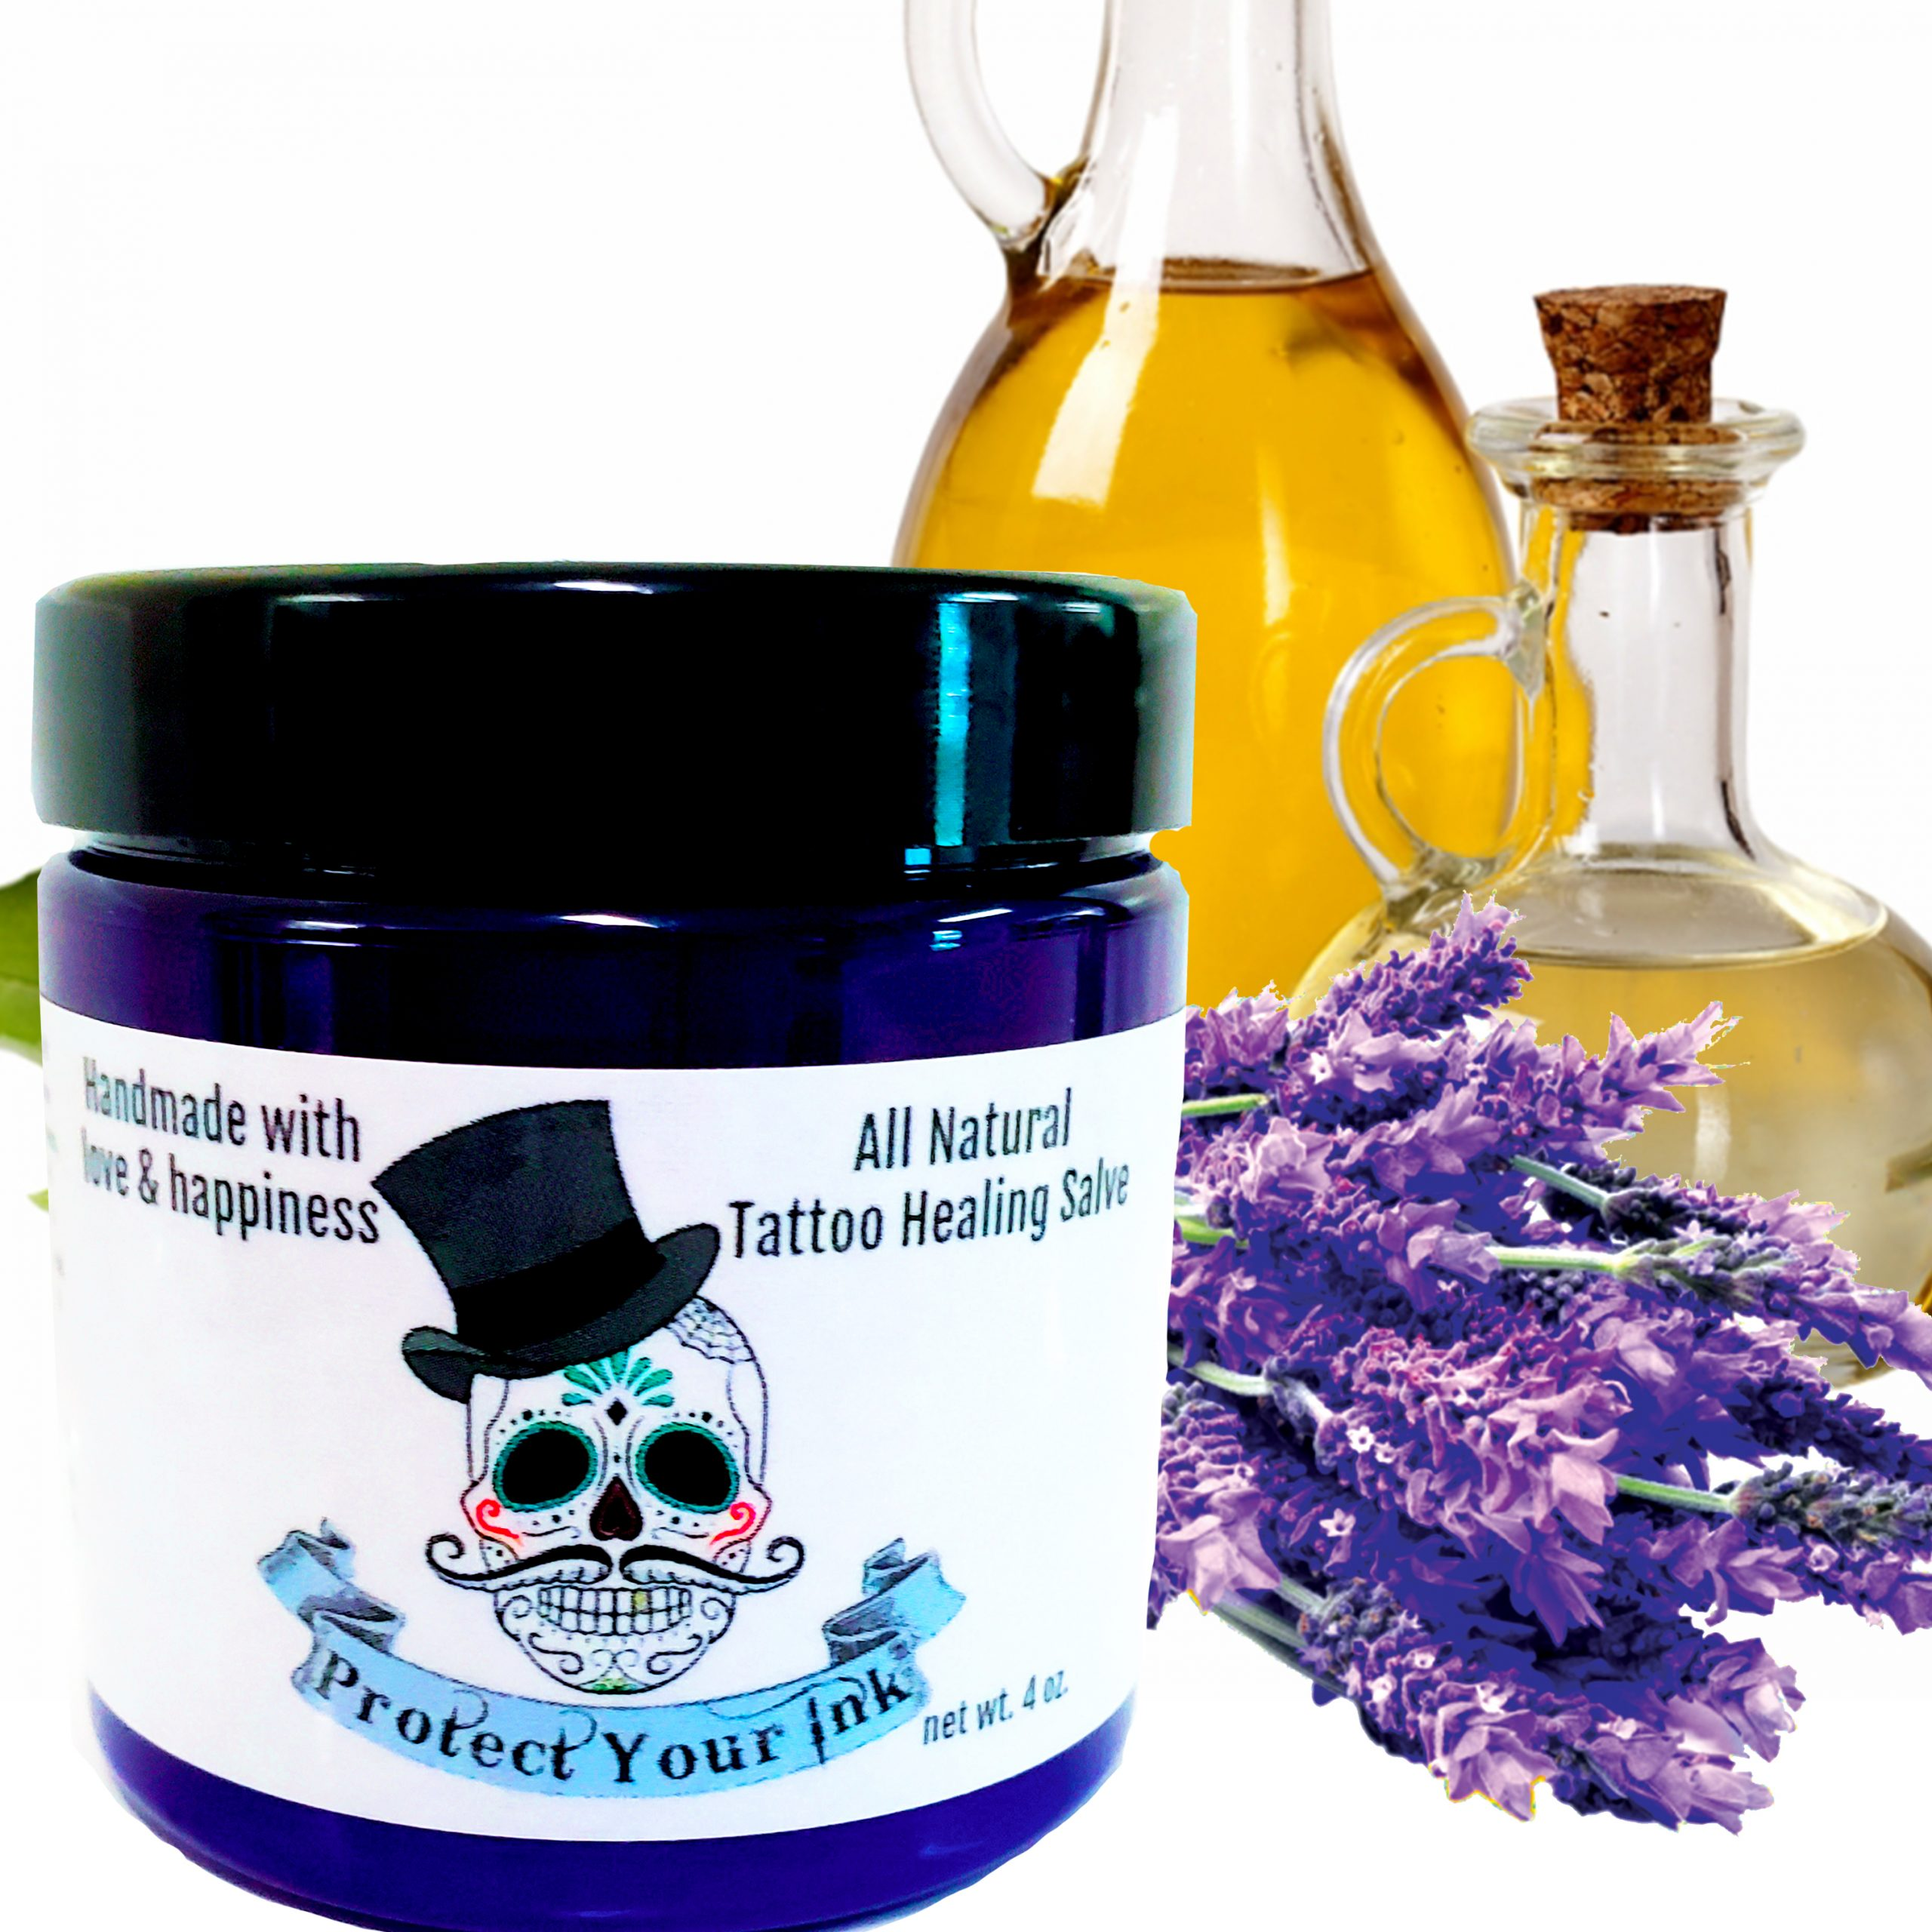 protect your ink large tattoo aftercare